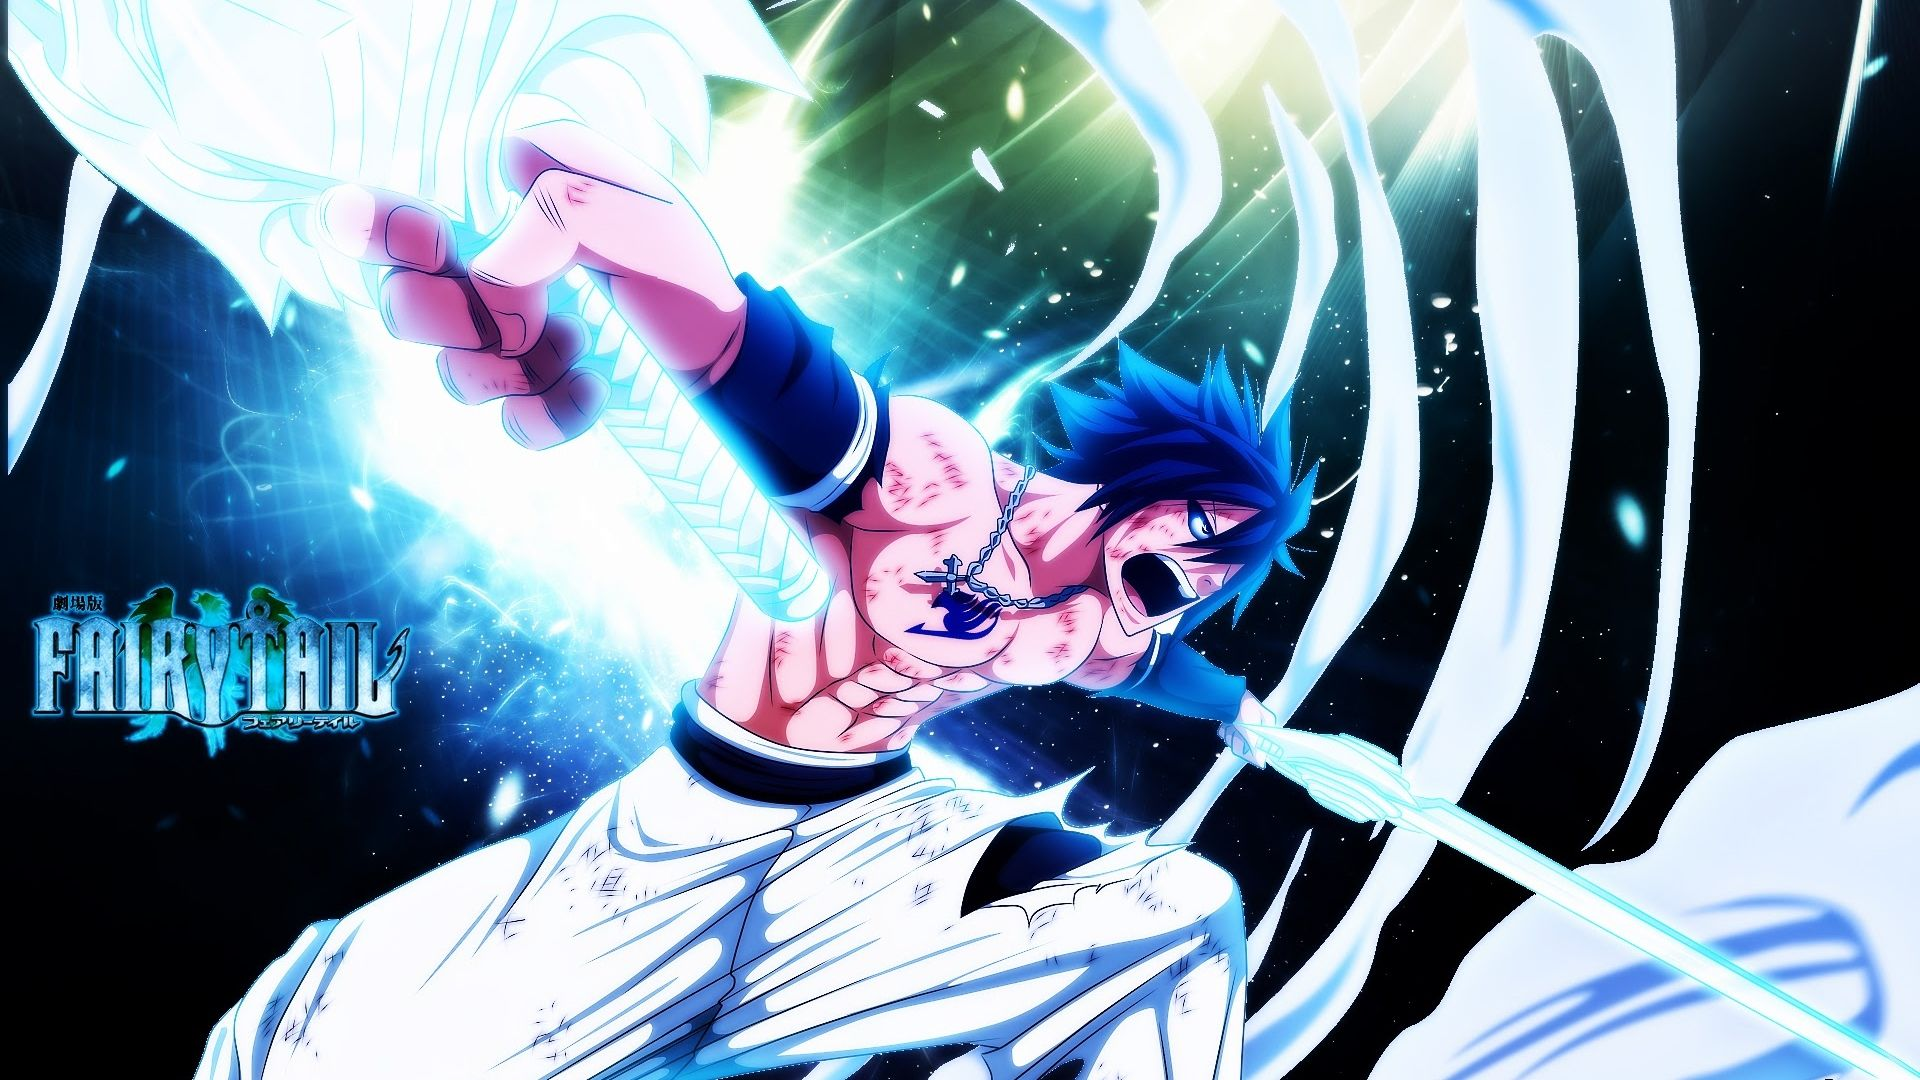 Free download gray fullbuster anime fairy tail hd wallpapers image